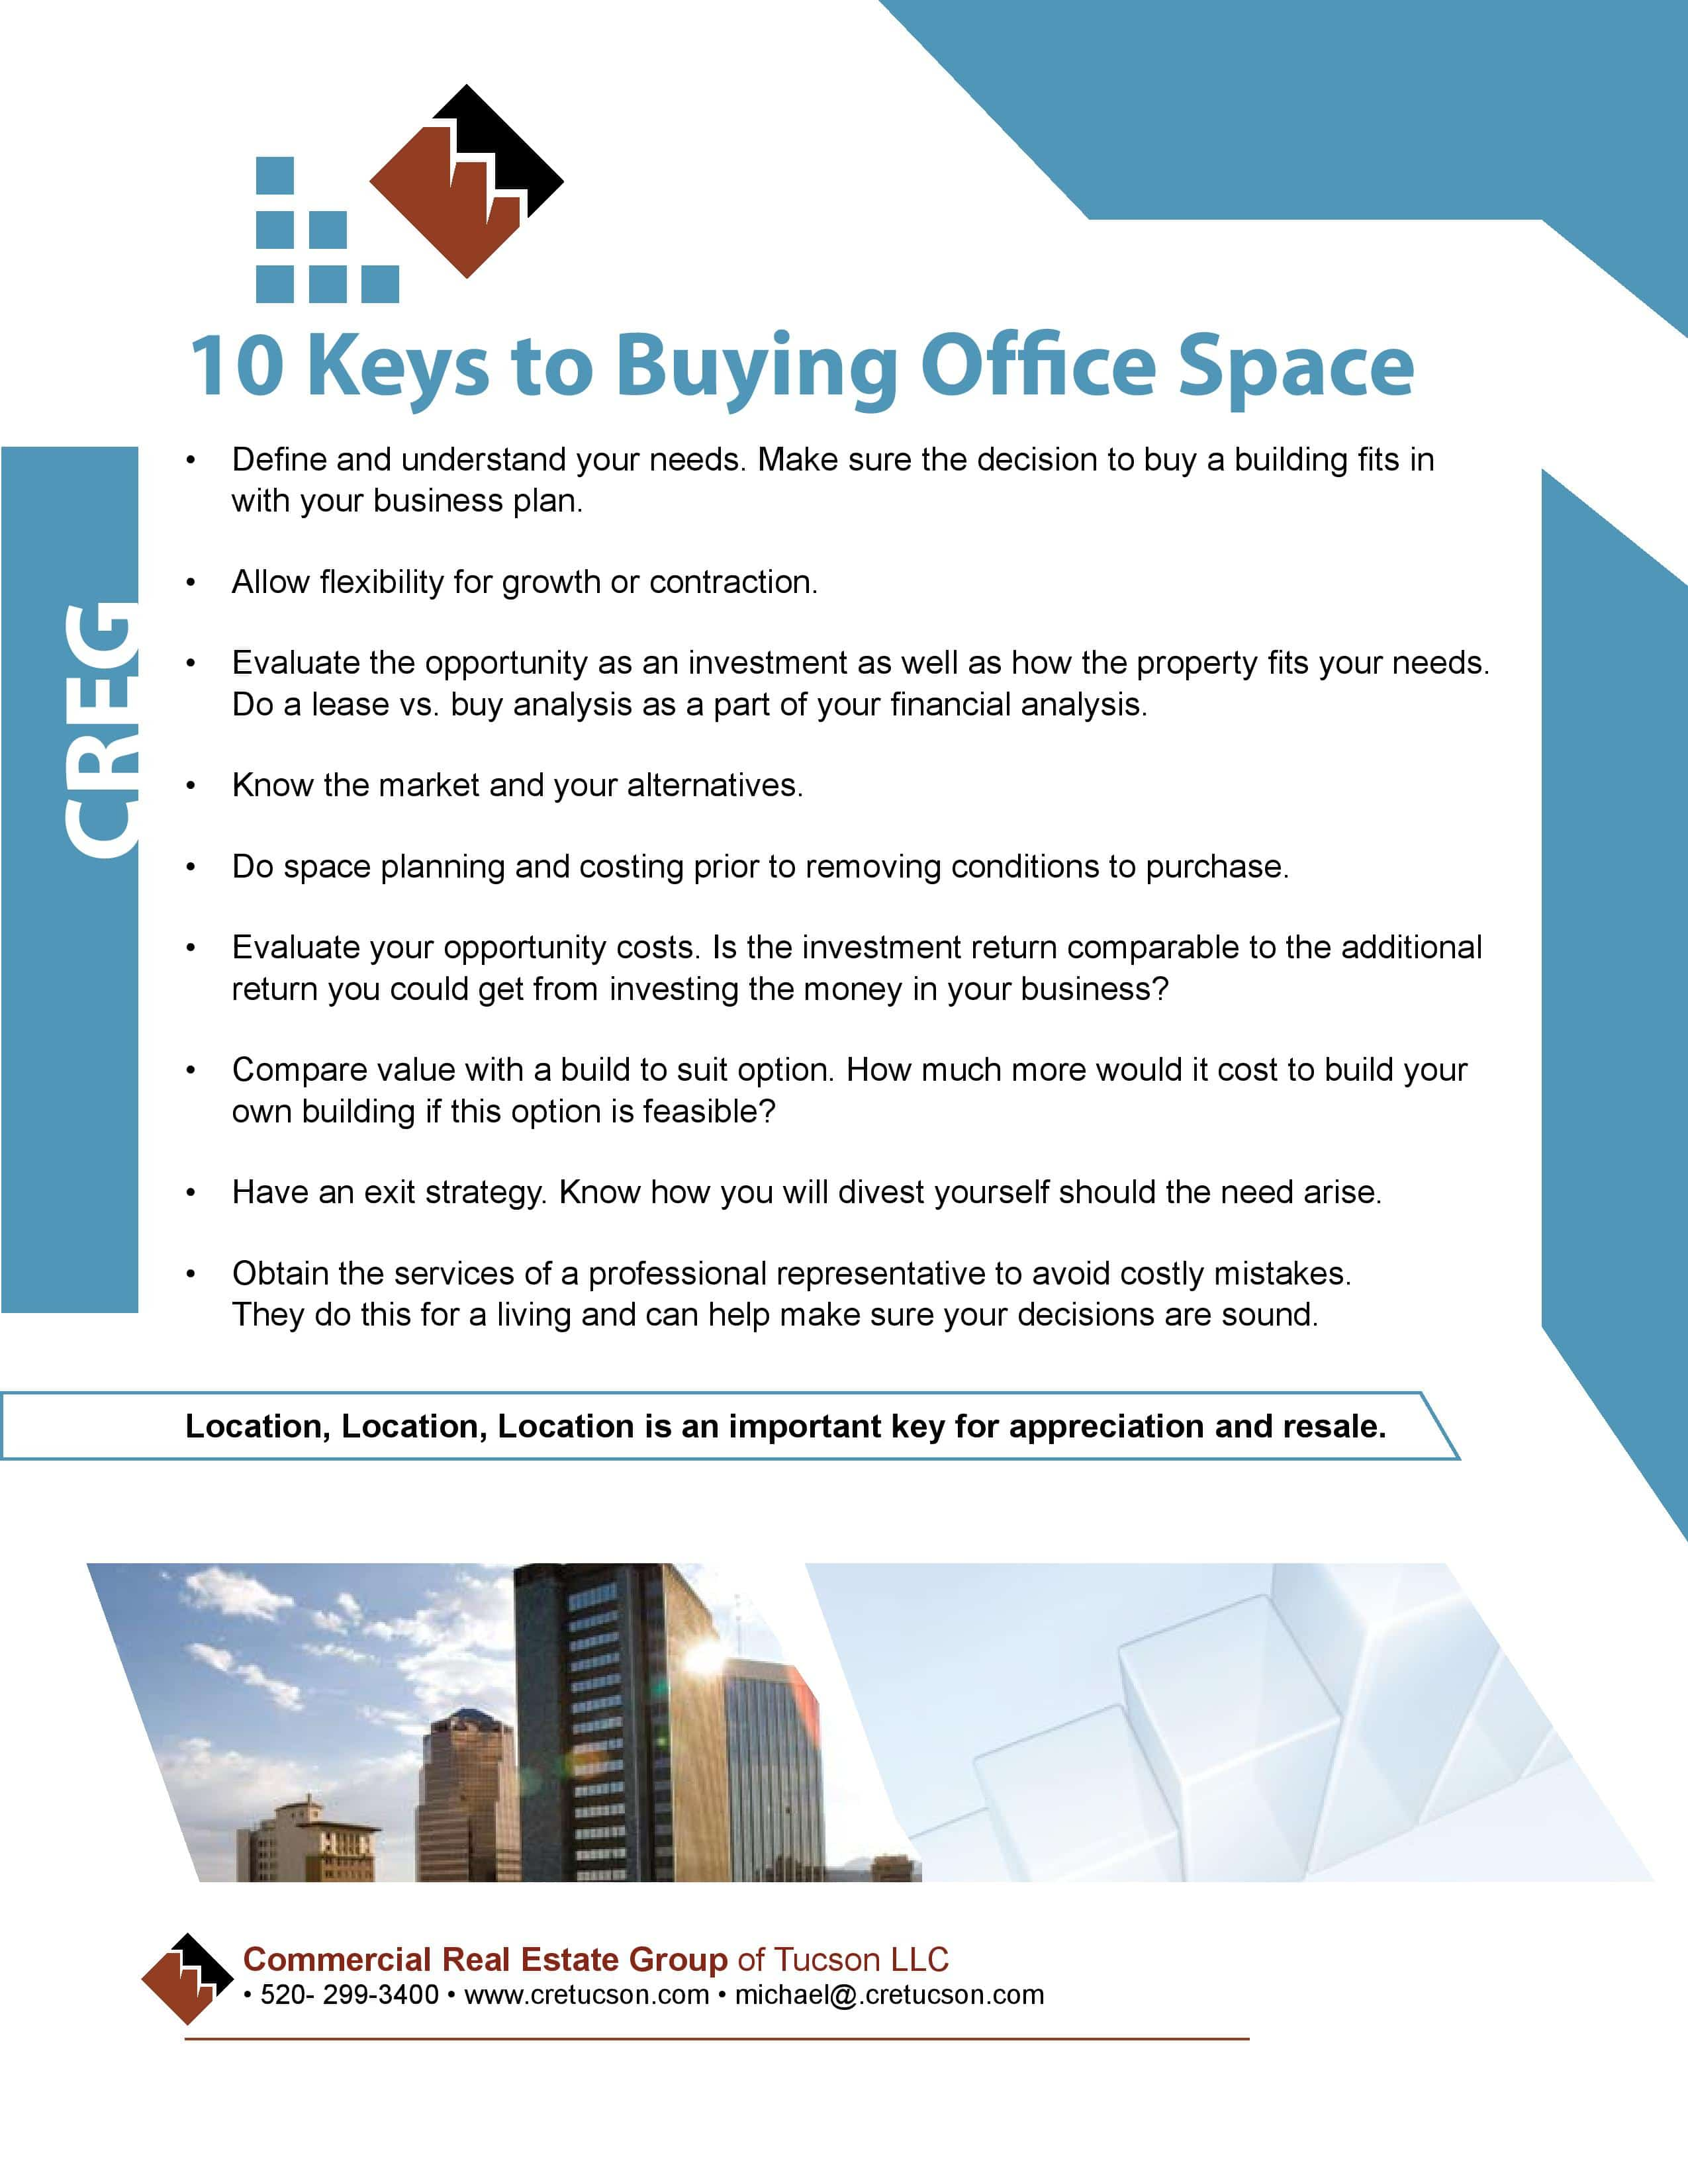 10 Keys to Buying Office Space - CRETucson Tips